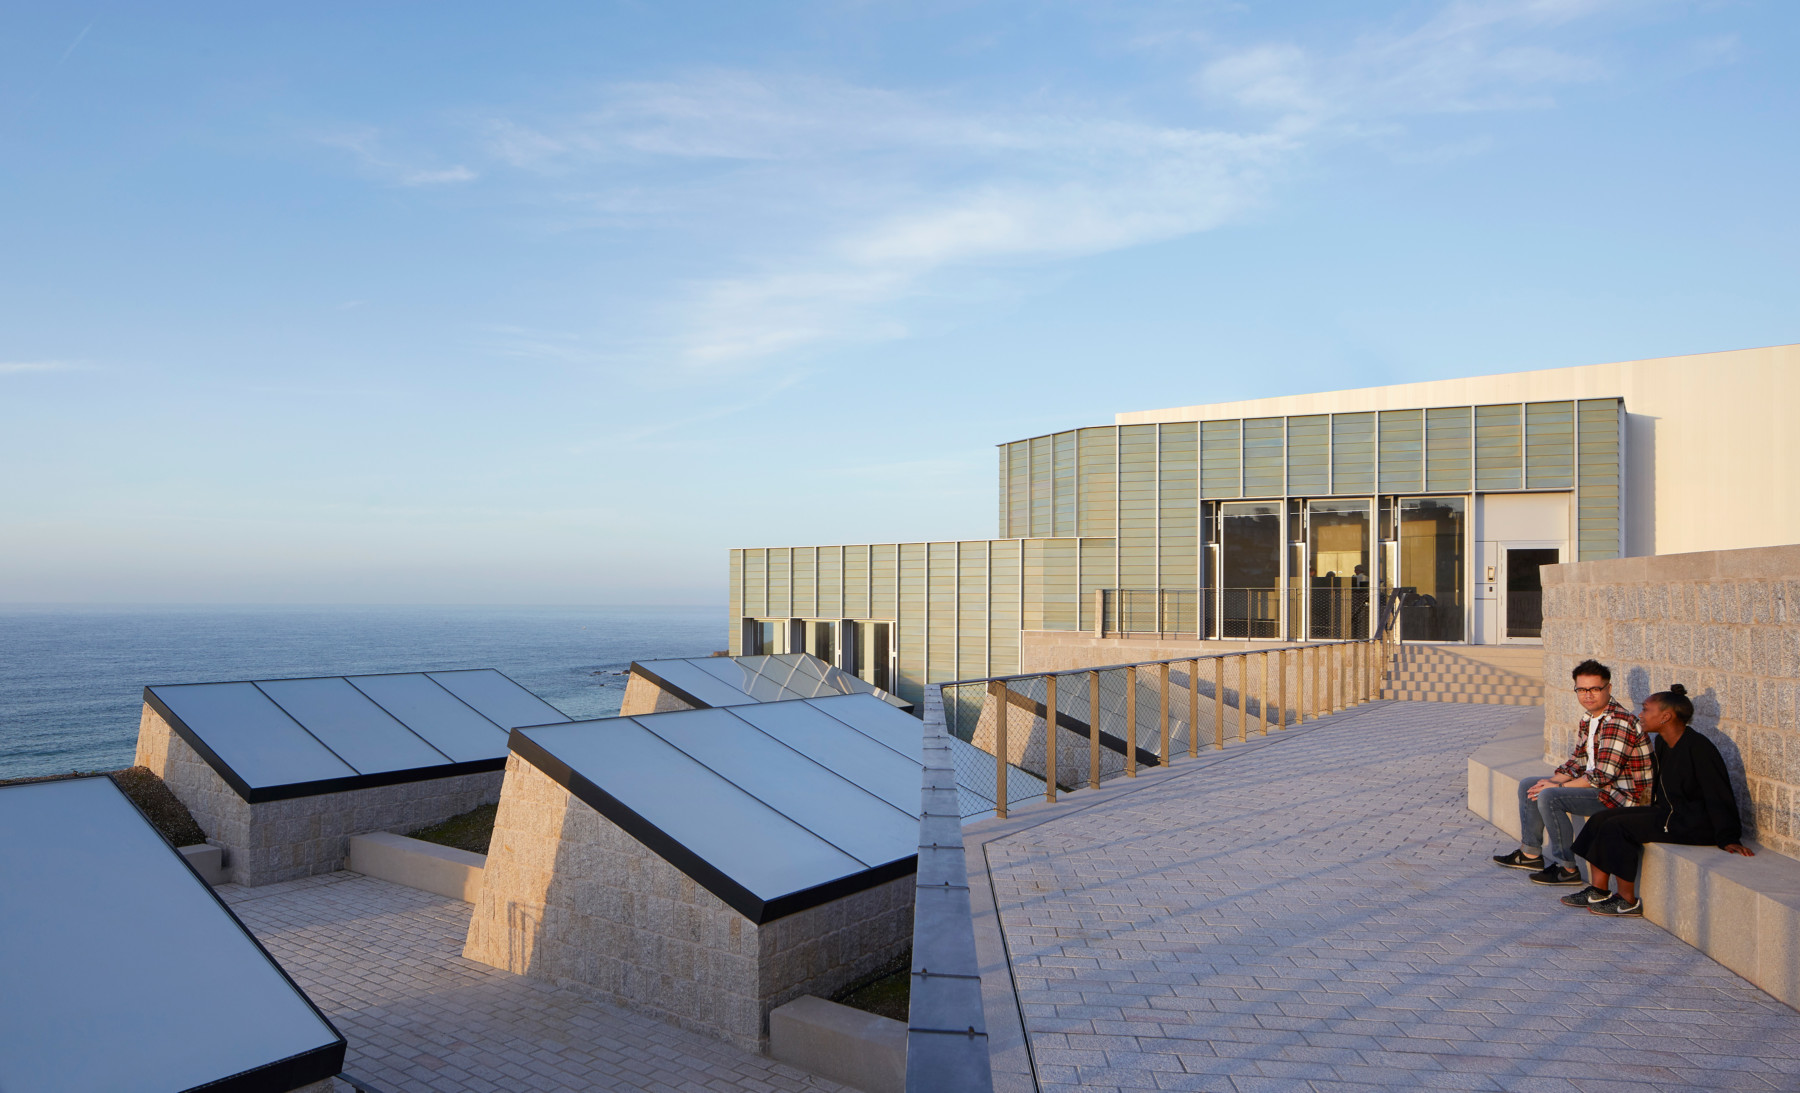 Jamie-Fobert-Architects Tate-St-Ives Cornwall Hufton+Crow beach-terrace